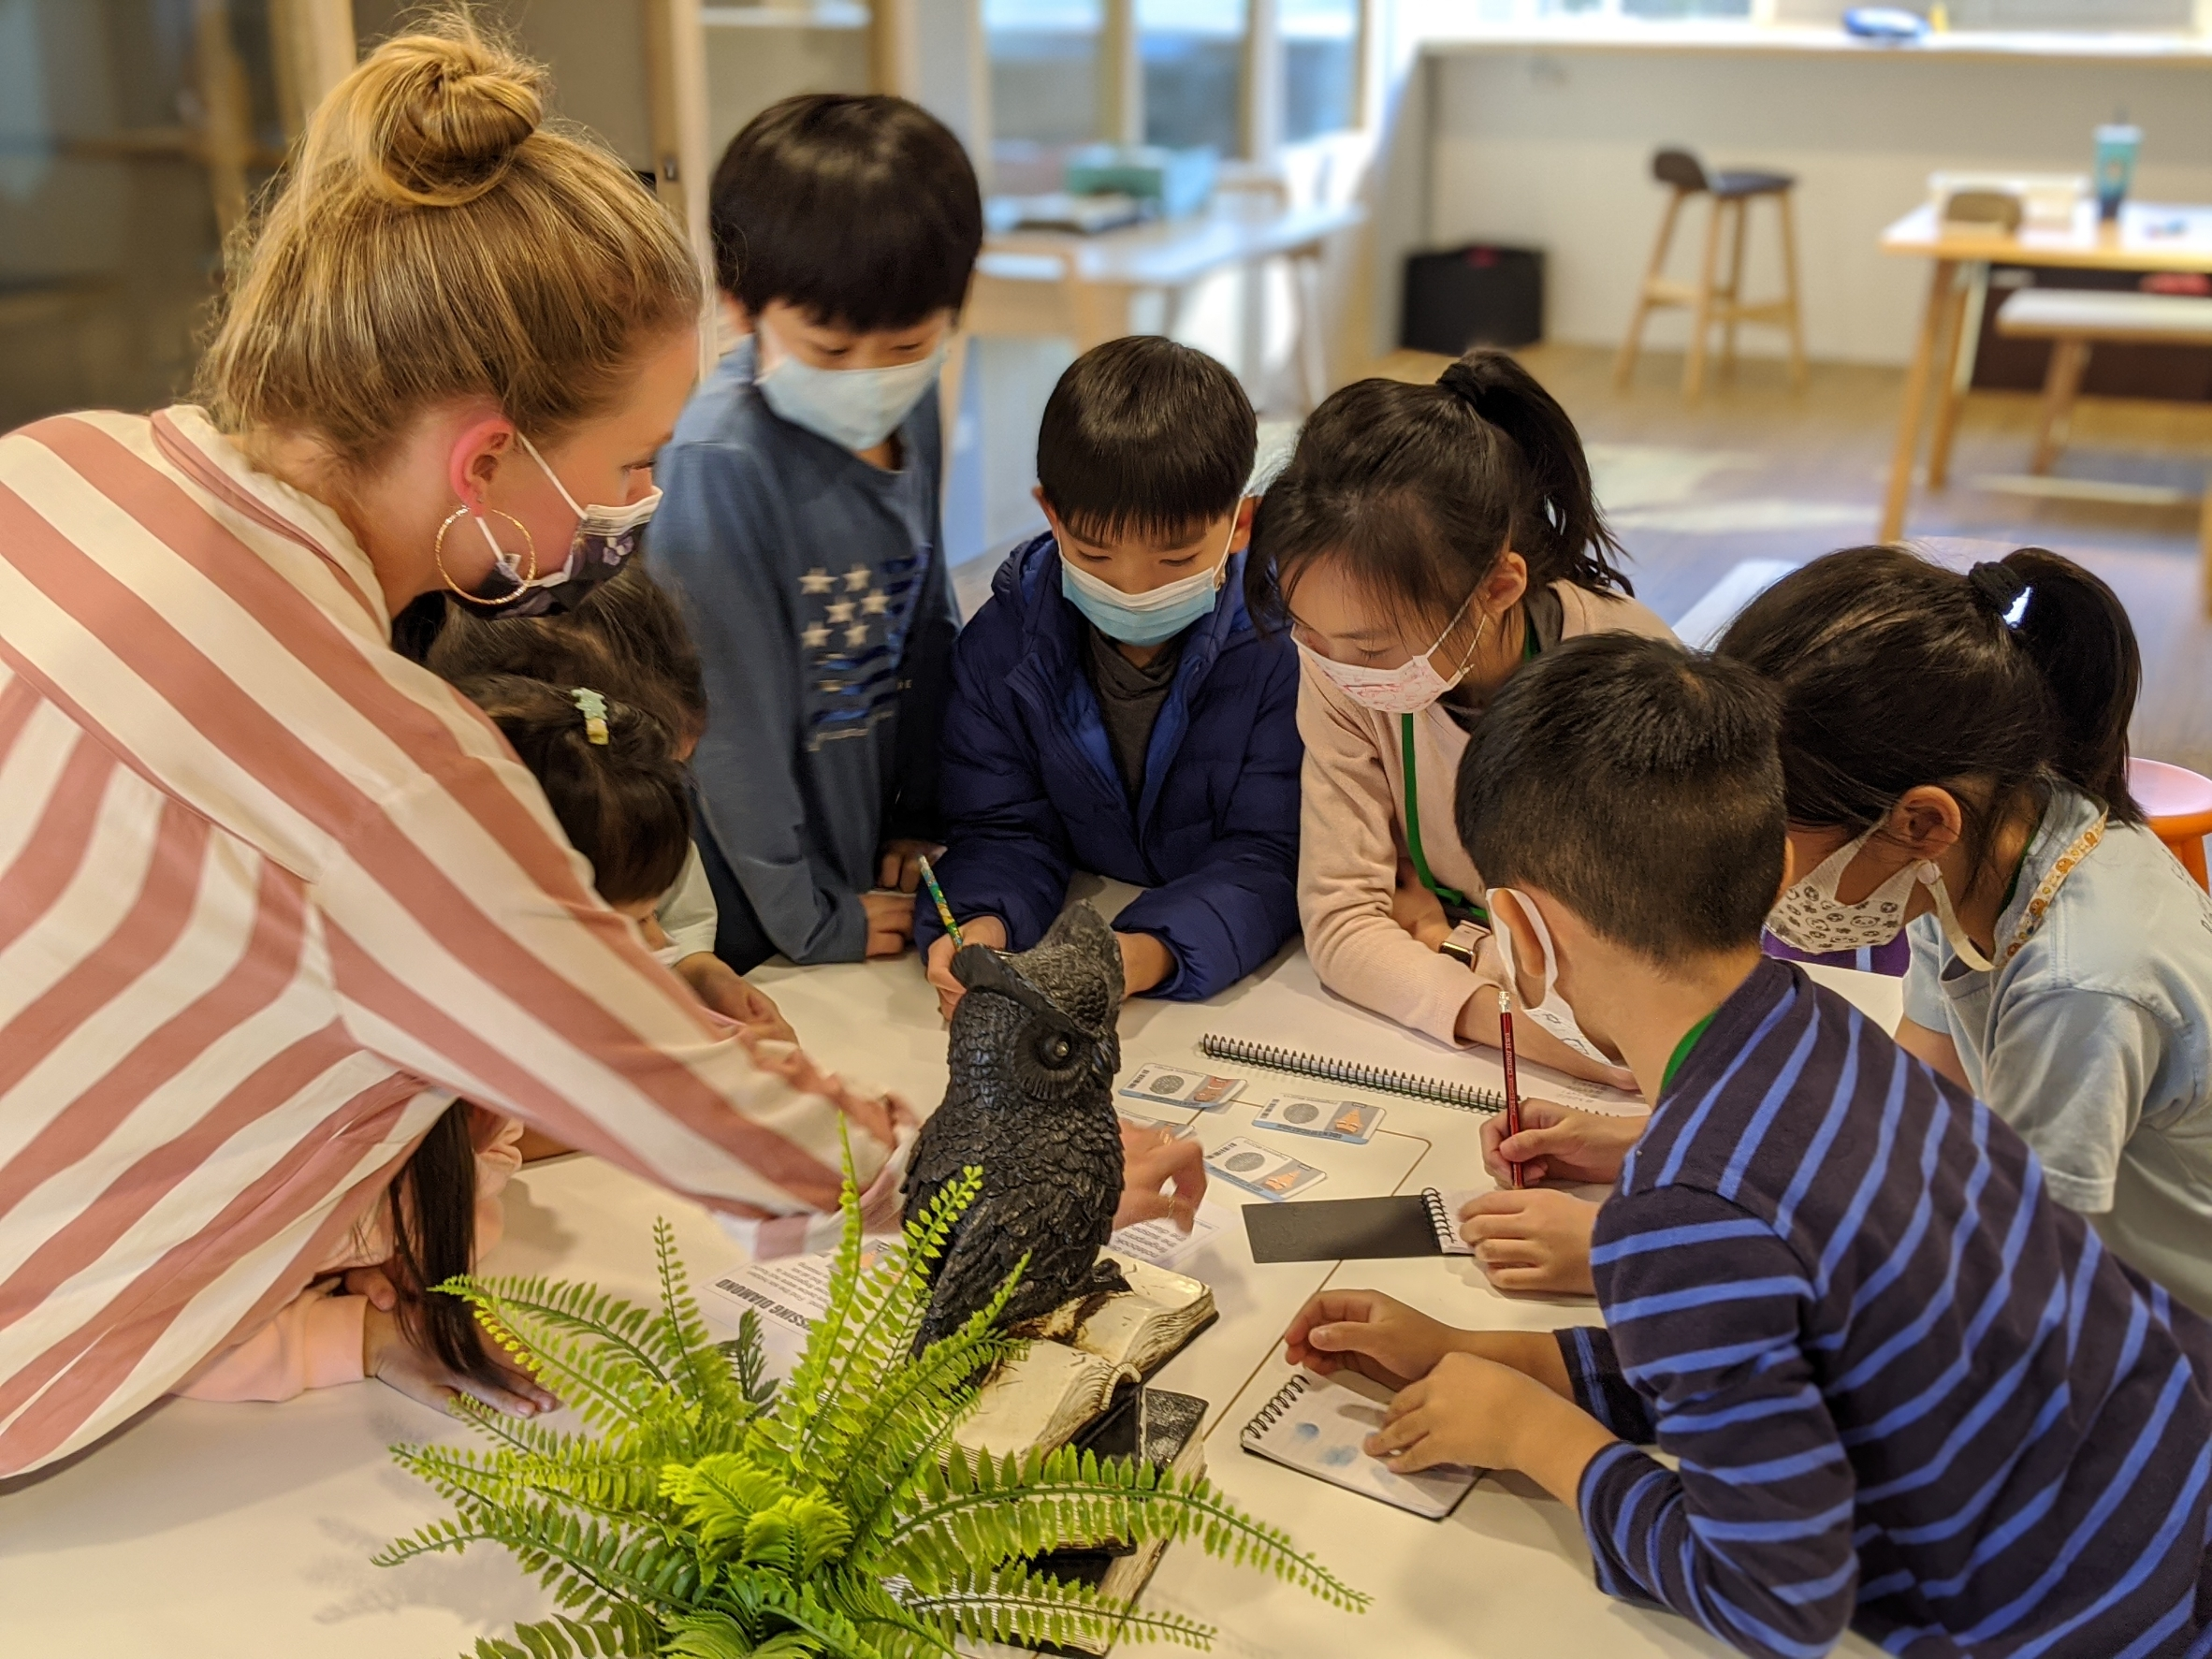 Teaching English and Living in Taiwan Jobs Available 教學工作, Little Green House American Academy Well-Established School Offers Long-term Positions in a Professional, Friendly Environment image